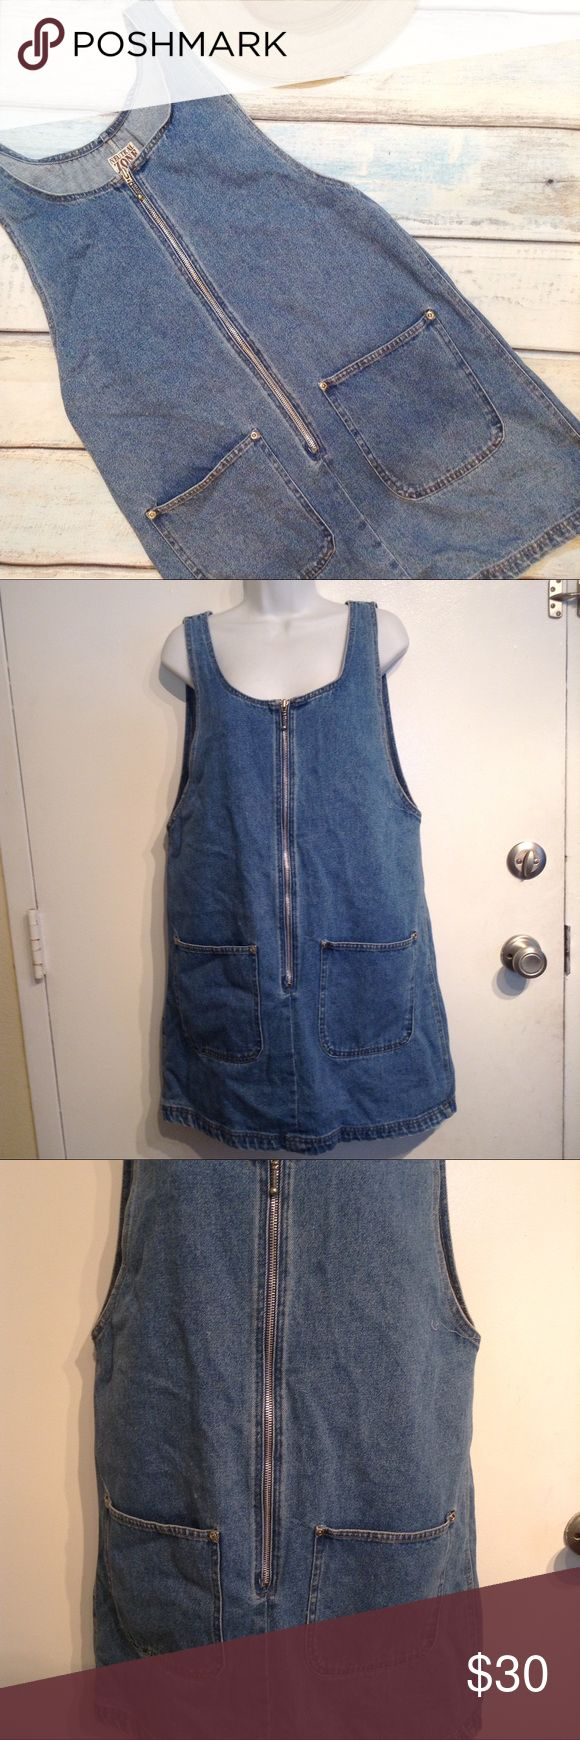 """VTG 90s Denim Zip Up Dress Vintage 90s dress with pockets and zipper up the front. Size medium. Perfect for a tumblr hipster style look. Measures 19.5"""" flat from armpit to armpit and 35.5"""" shoulder to hem. No modeling. Smoke free home. I do discount bundles. Vintage Dresses"""